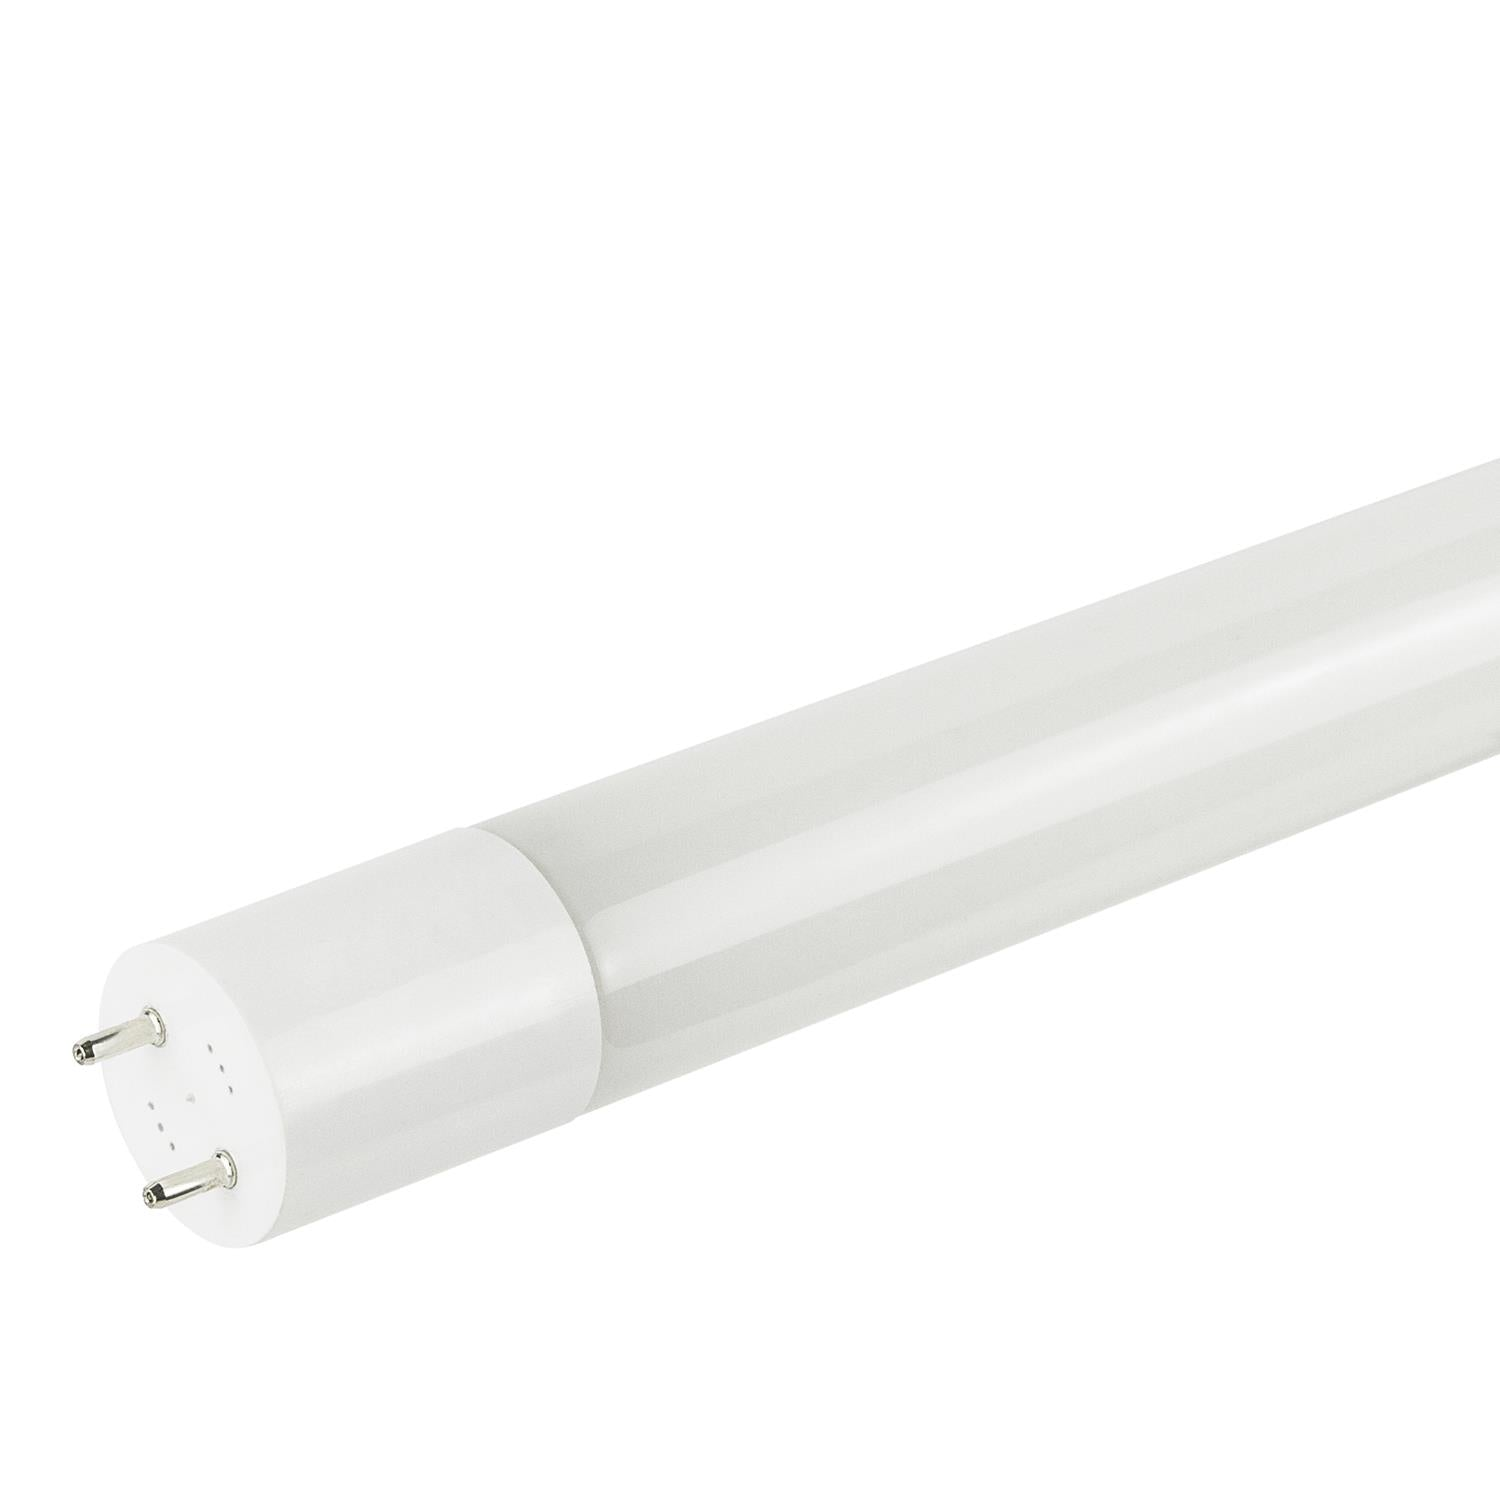 SUNLITE 8w T8 LED Tube 4000K Cool White G13 Base